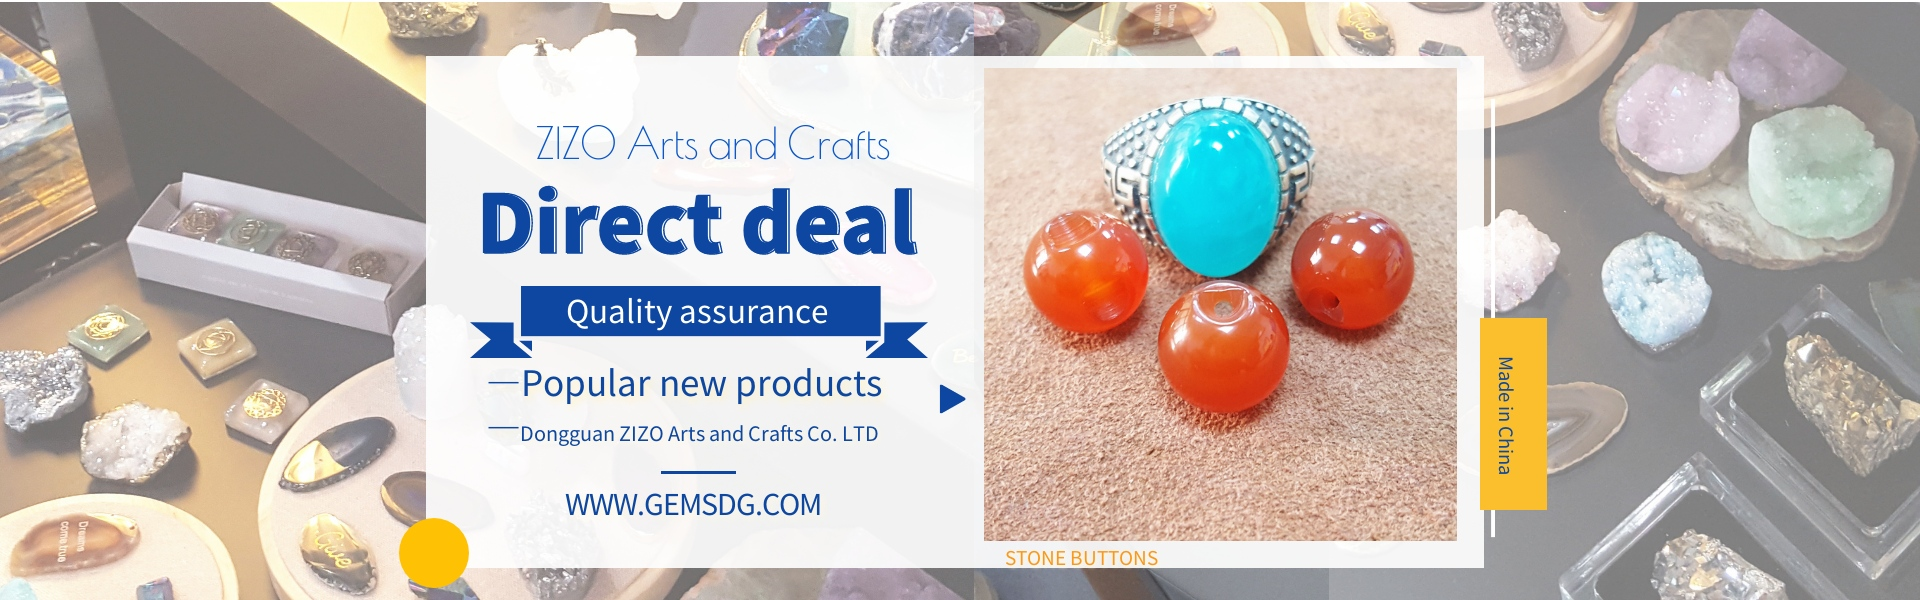 gems,stone buttons,jade,Dongguan ZIZO Arts and Crafts Co. LTD